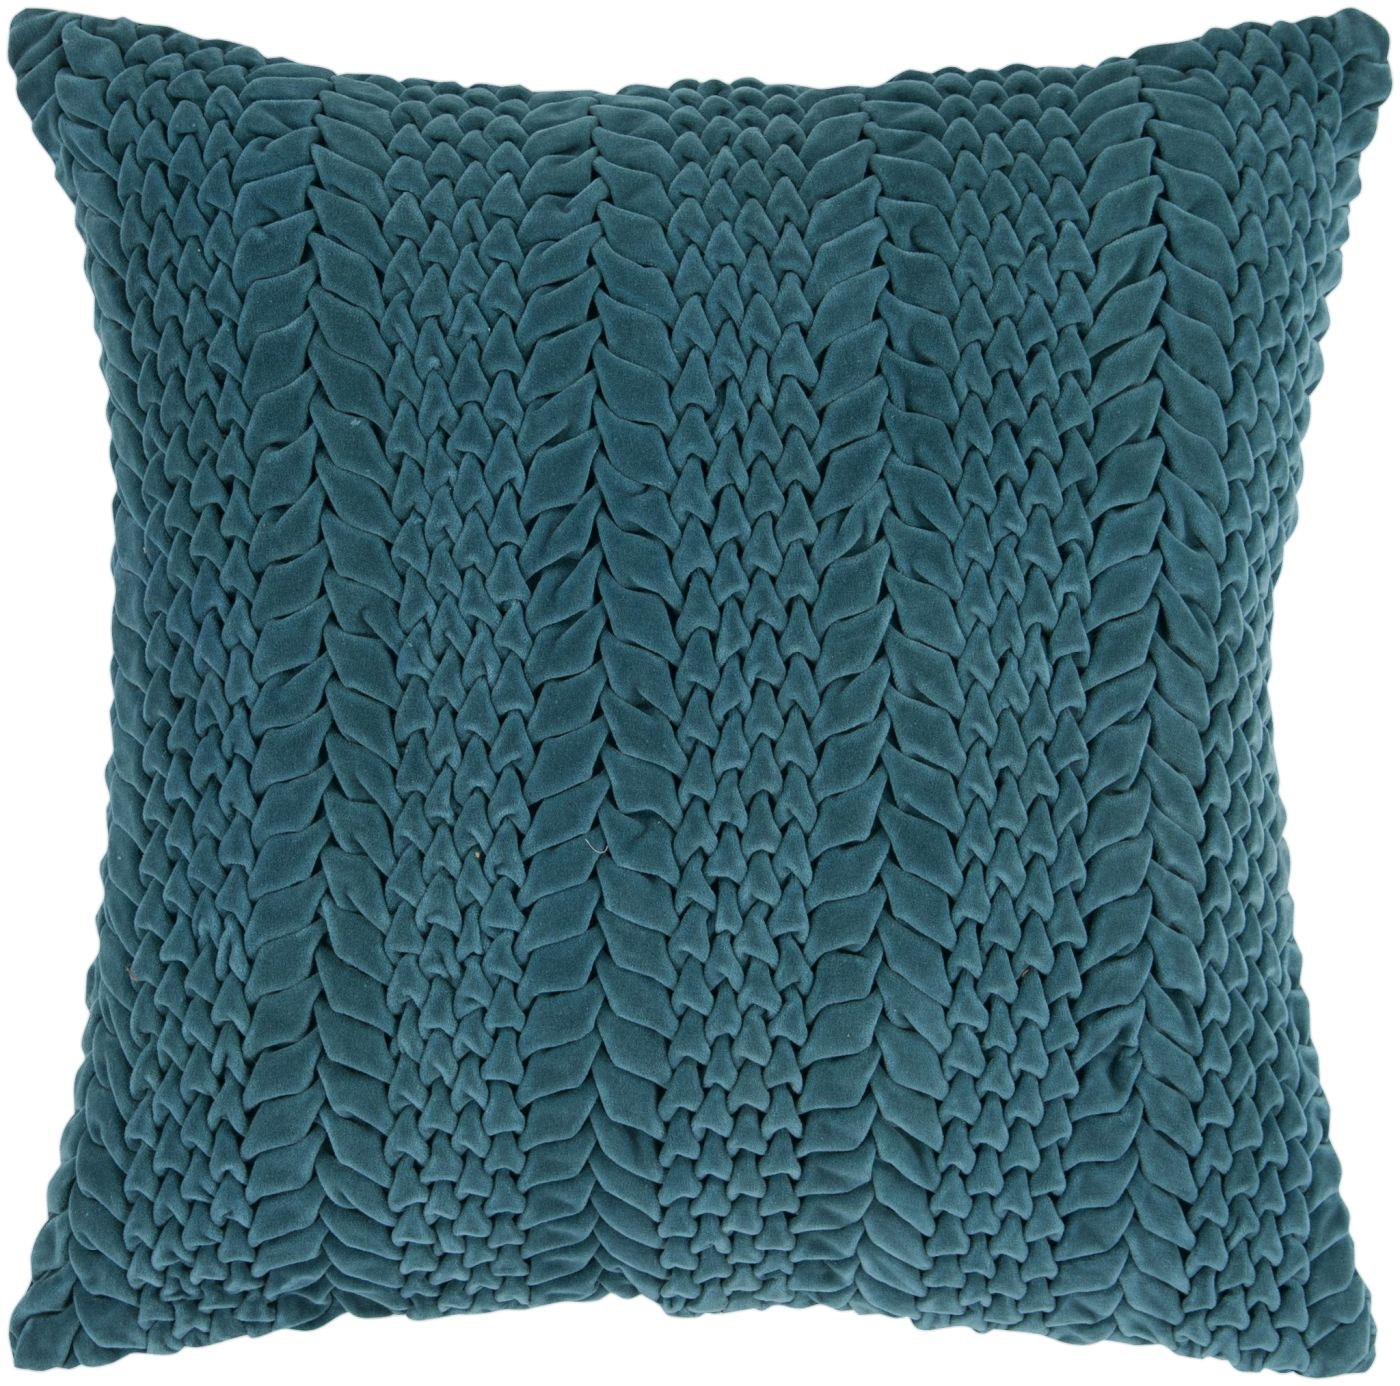 Throw Pillow Warehouse : Surya Velvet Luxe Throw Pillow Green P0279-1818D. Only $73.80 at Contemporary Furniture Warehouse.